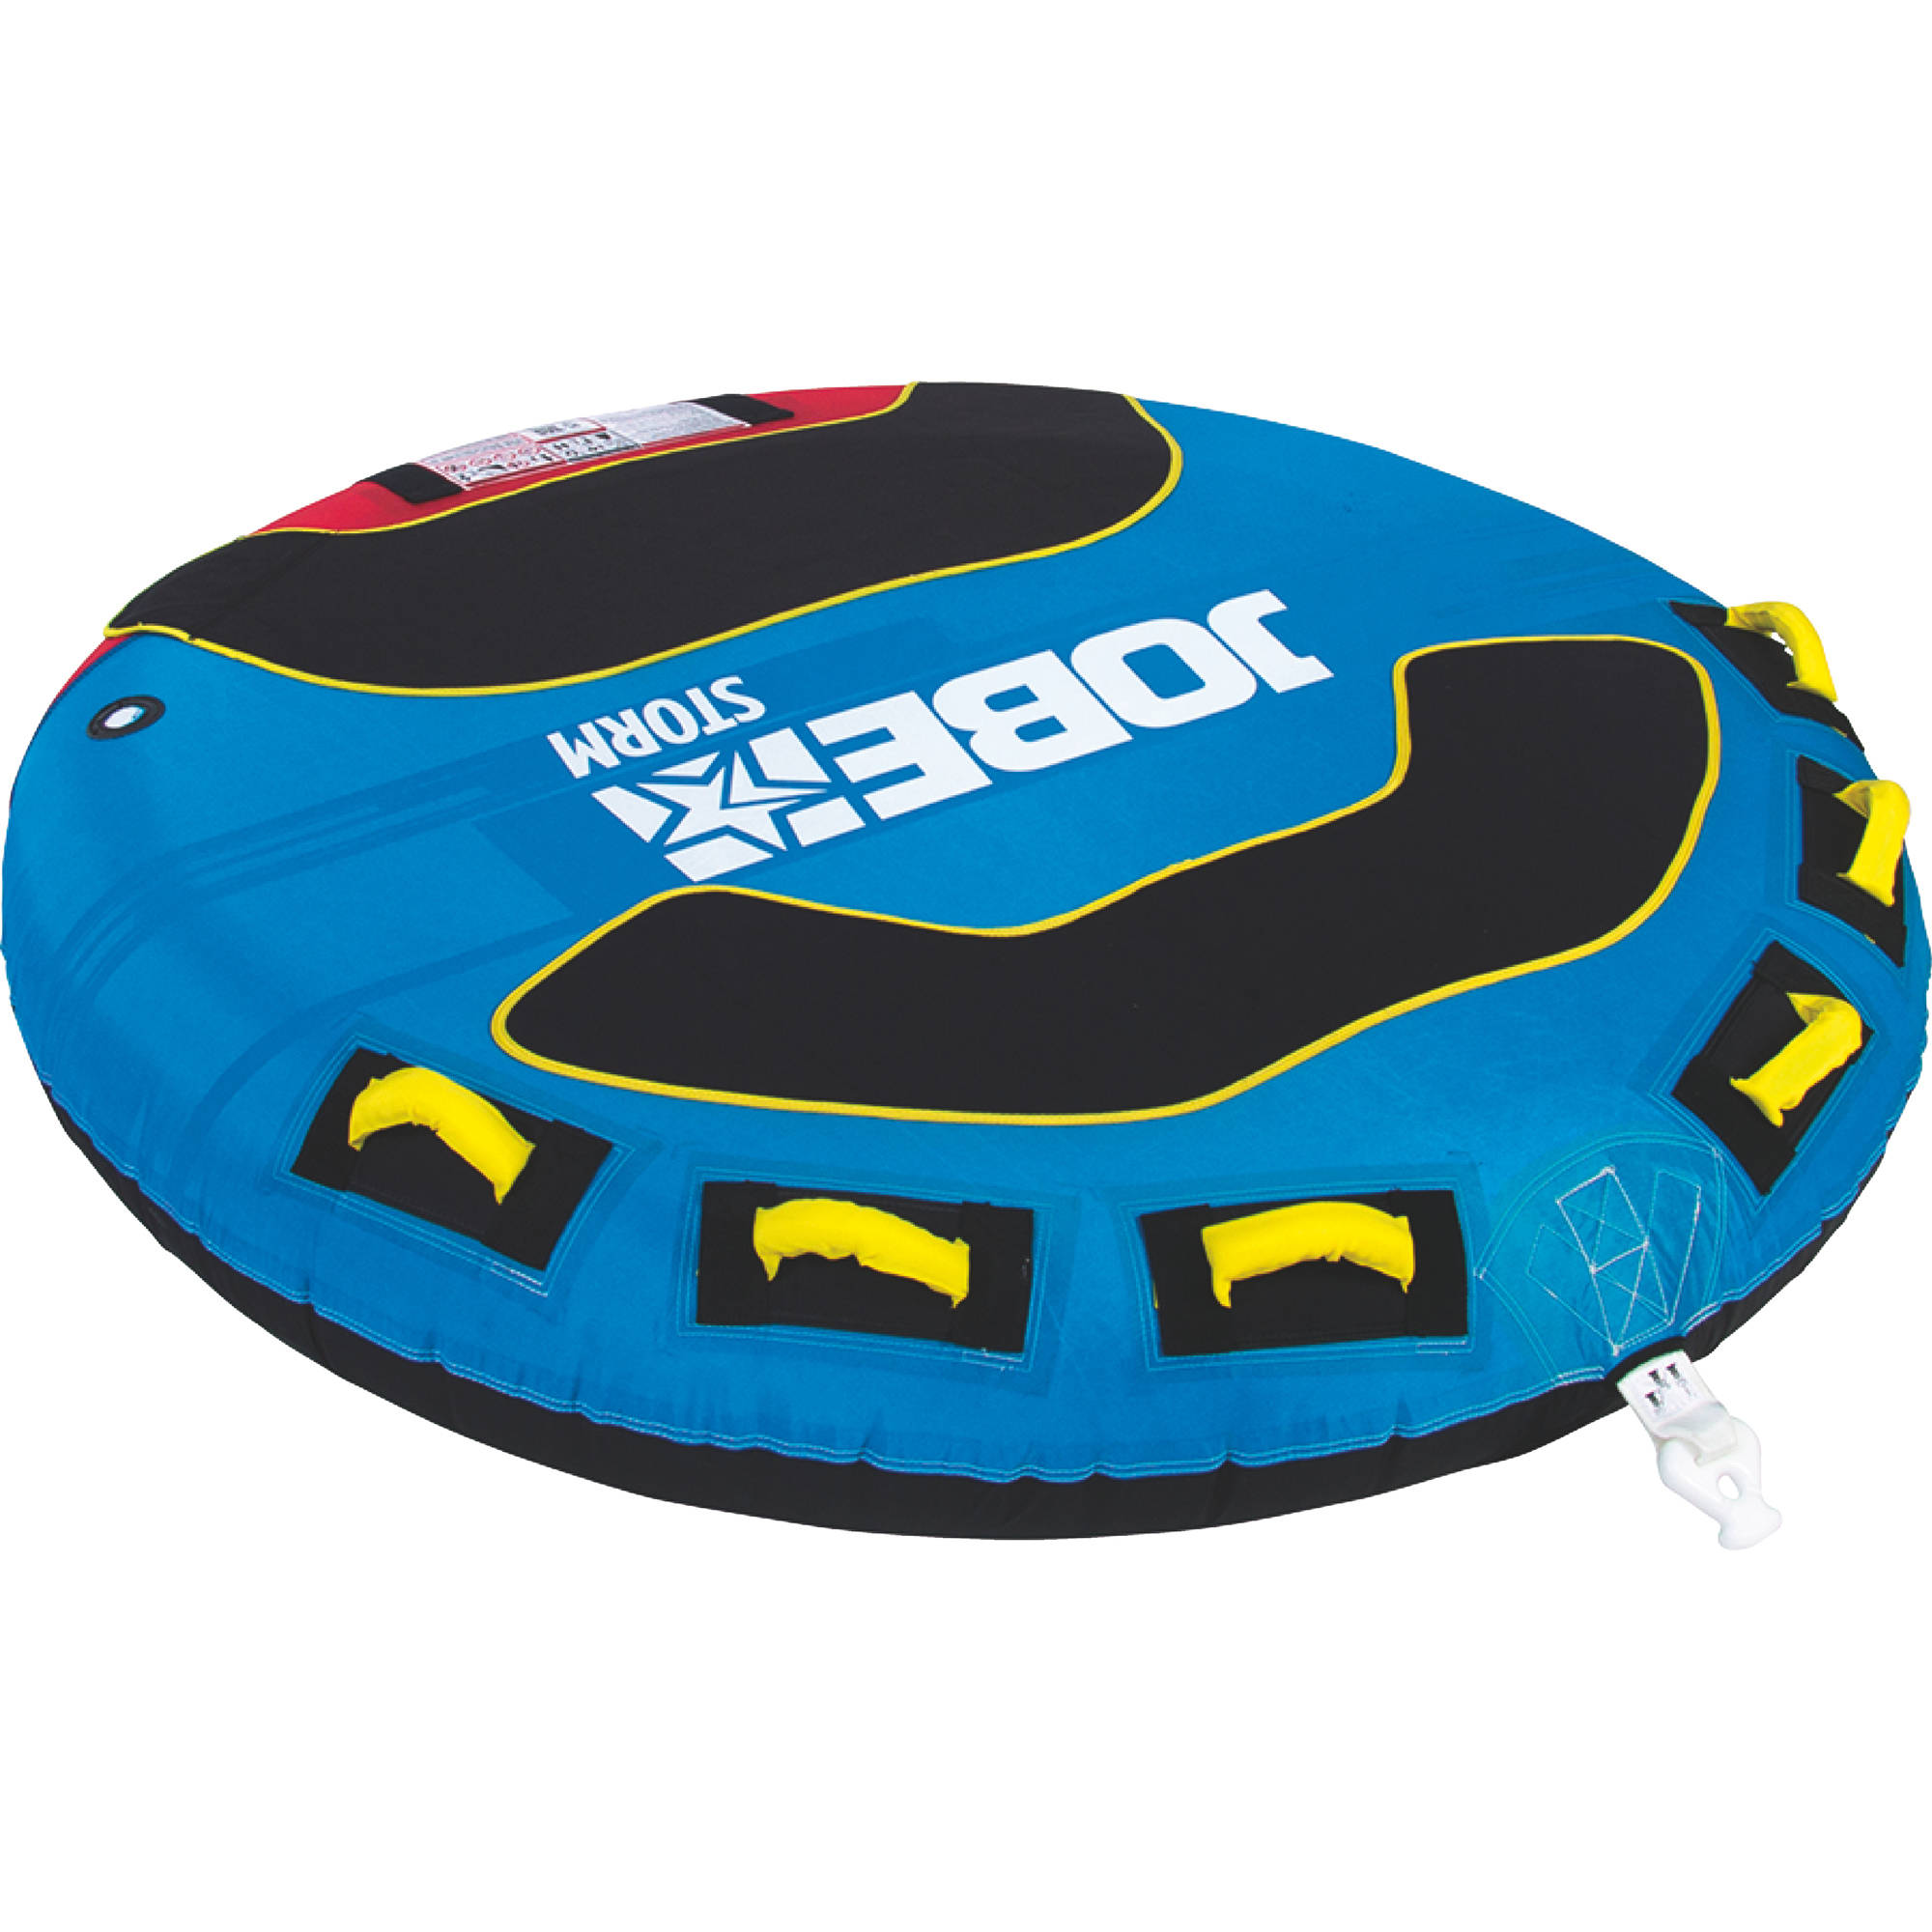 Jobe 230217005 Storm 2 Person Deck Tube Inflatable Towable by Jobe Sport International